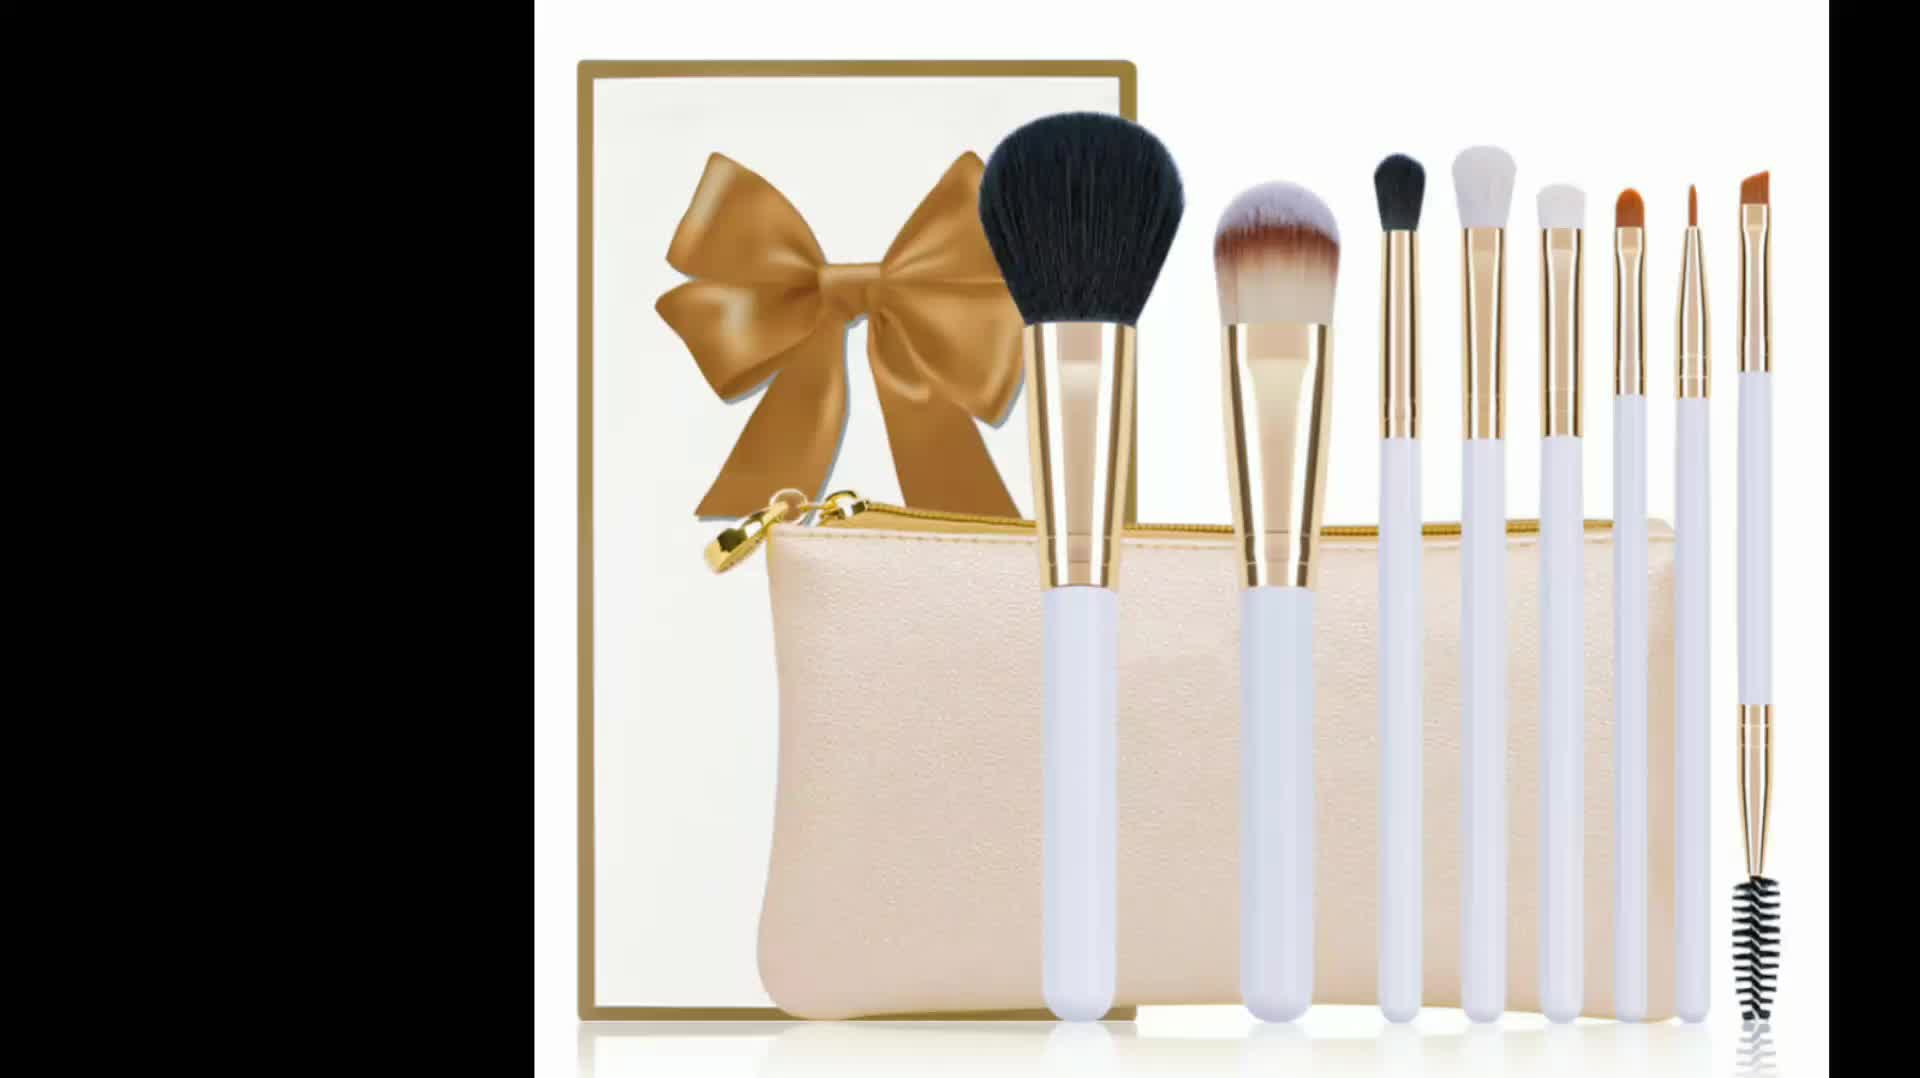 Top Quality Professional 메이 컵 Brush Kit 와 8 pcs Beautiful 브러쉬 as A Set